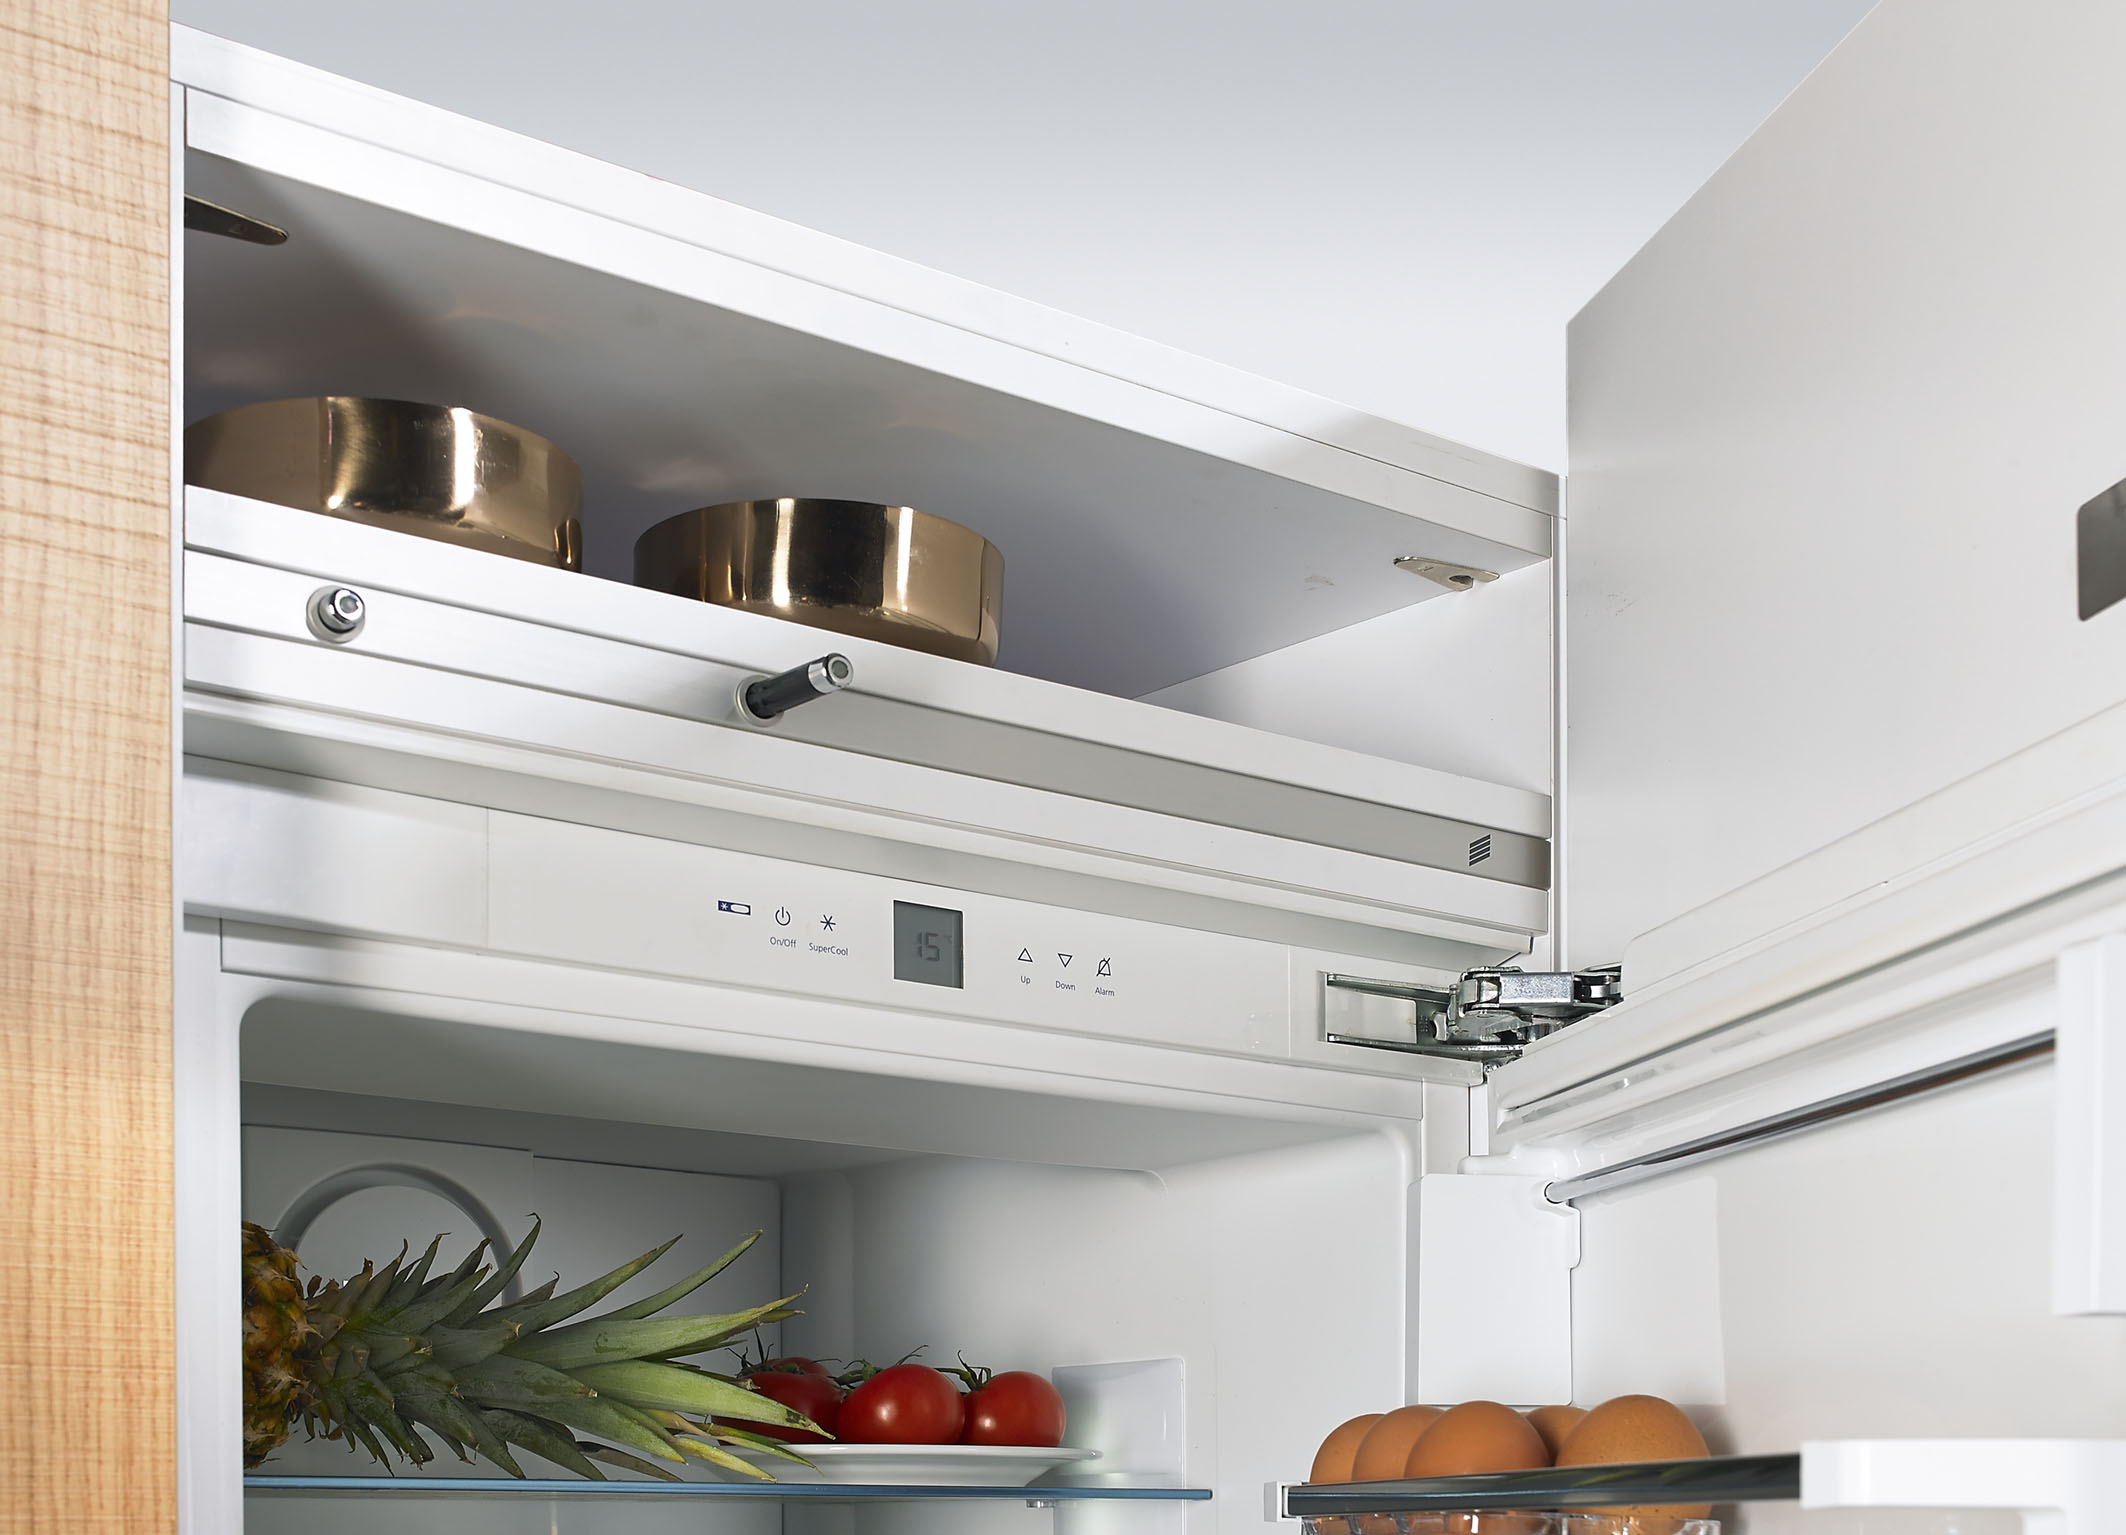 search hettich floating shelf brackets the function unit normally installed above appliance and concealed with loose designer profile discreetly integrates corner office furniture